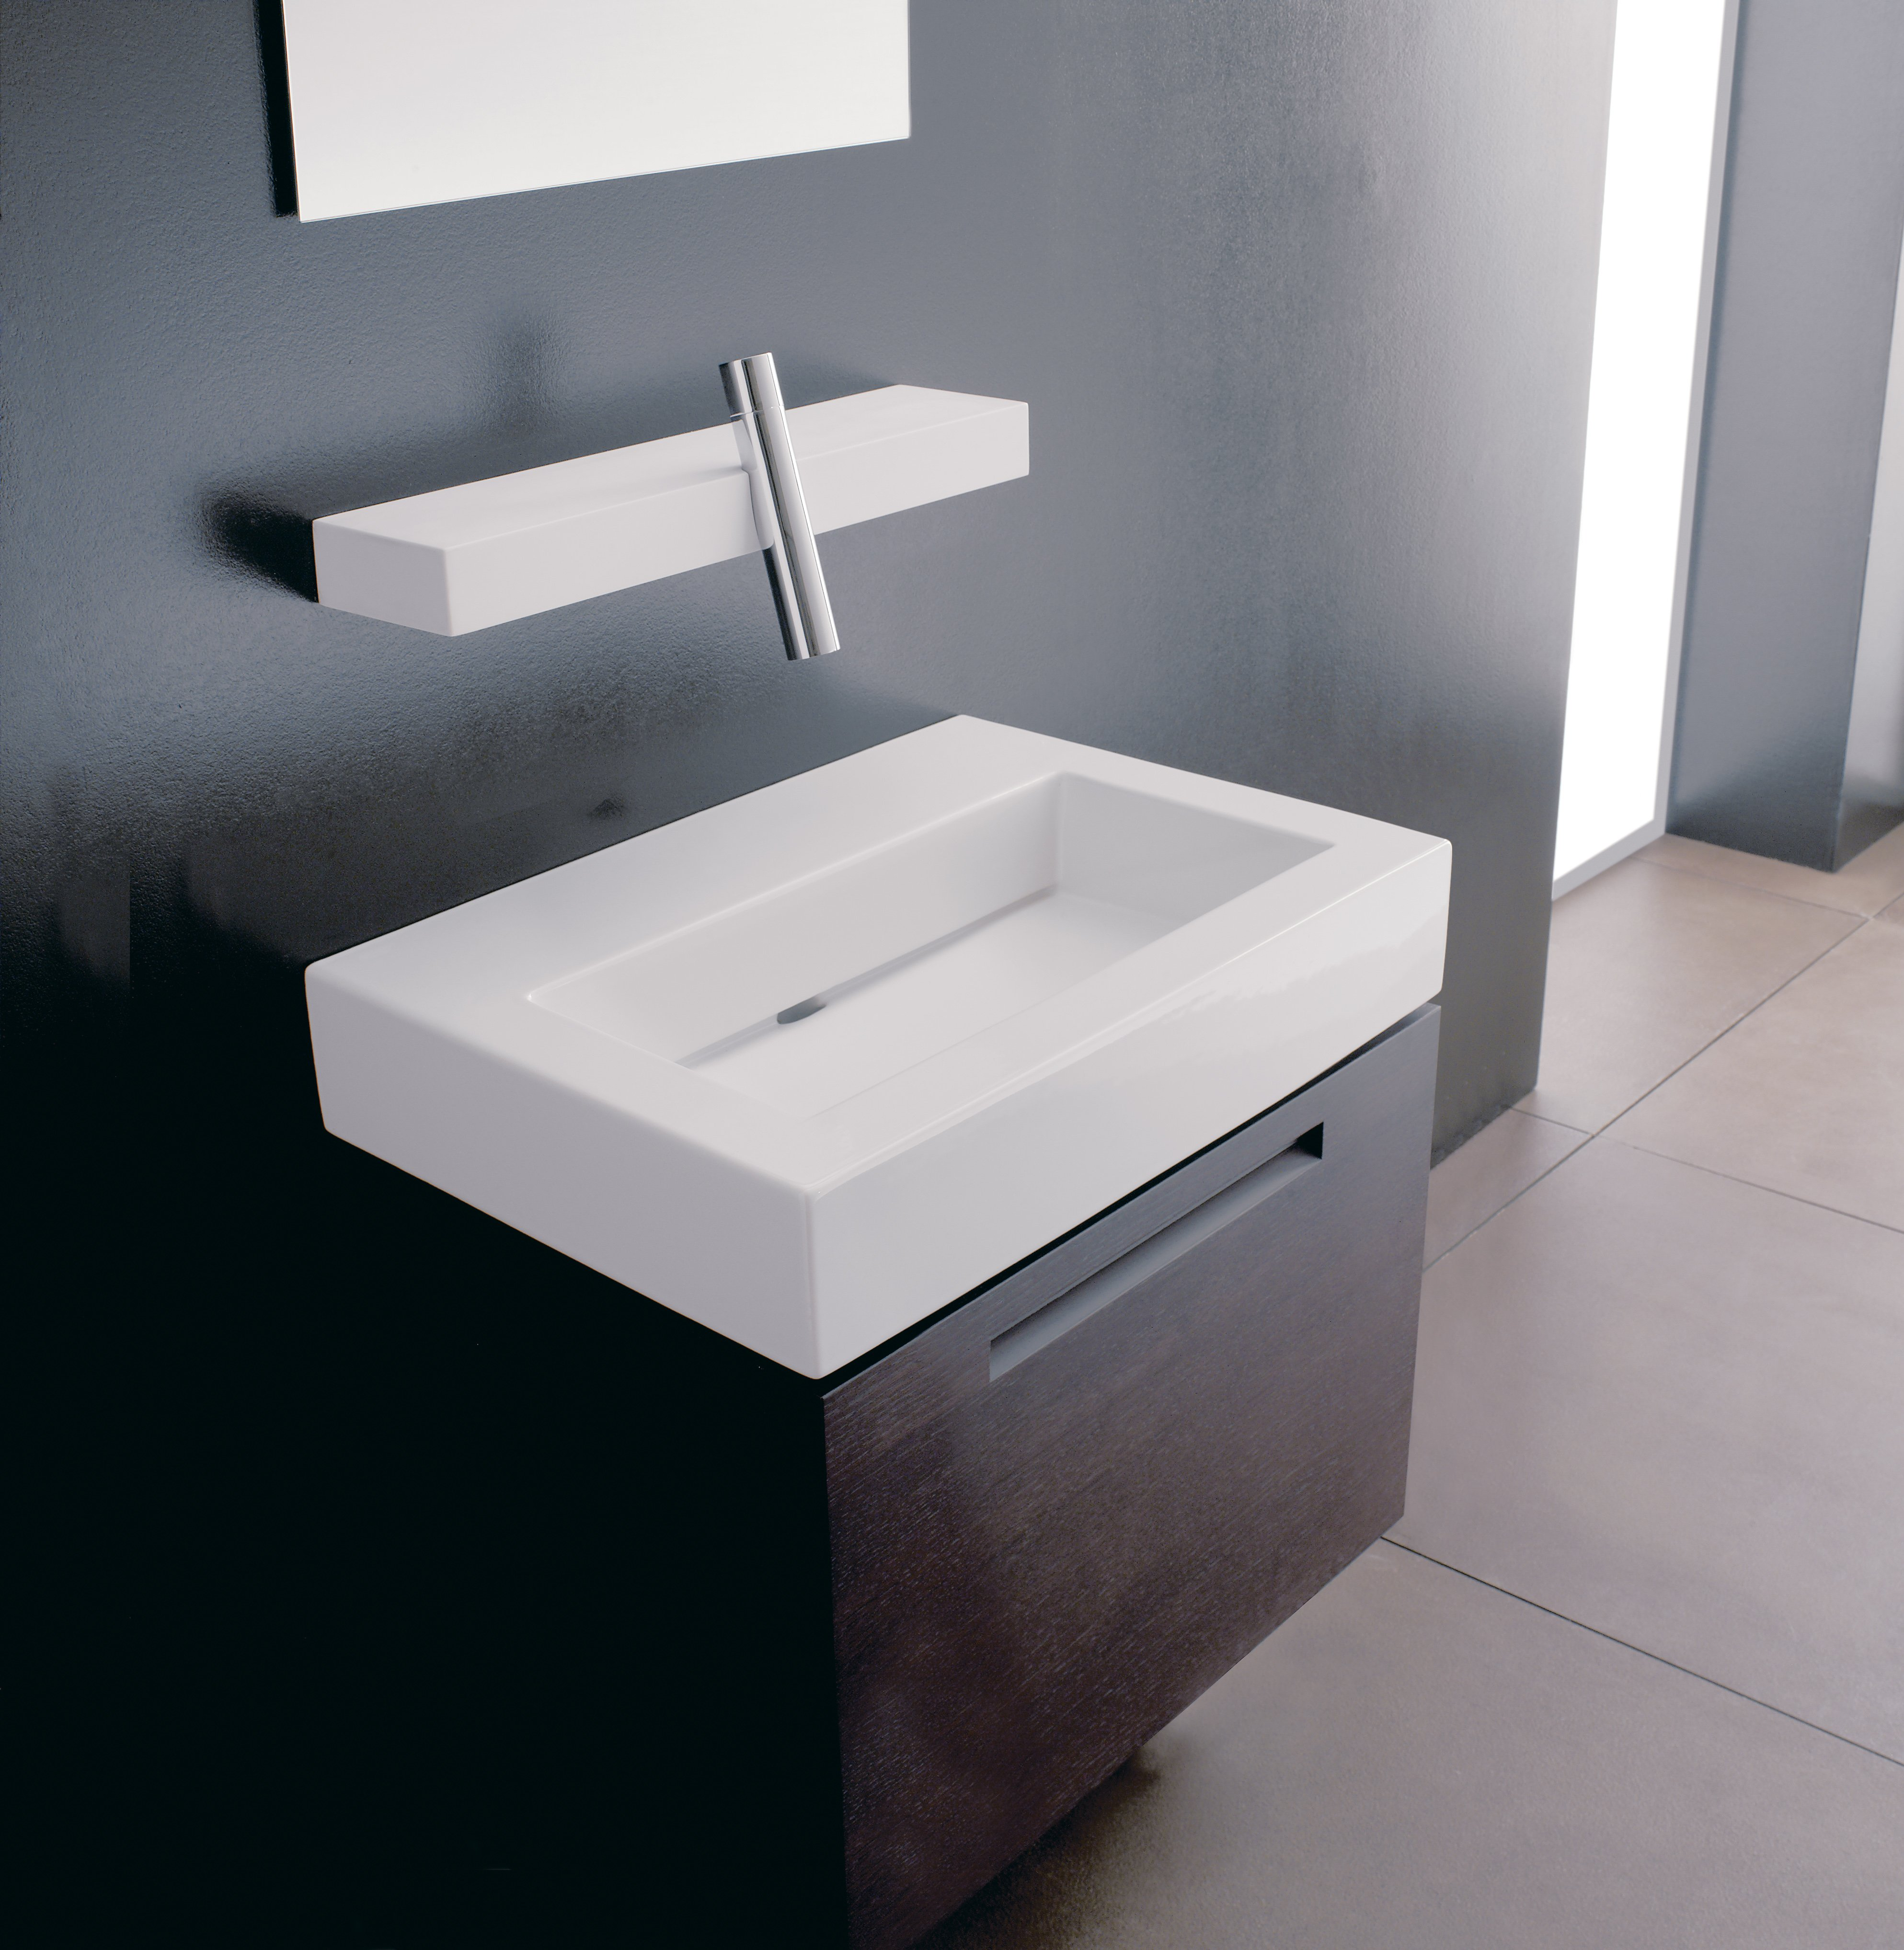 Blok countertop washbasin by rubinetterie 3m design for Bathroom wash basin counter designs